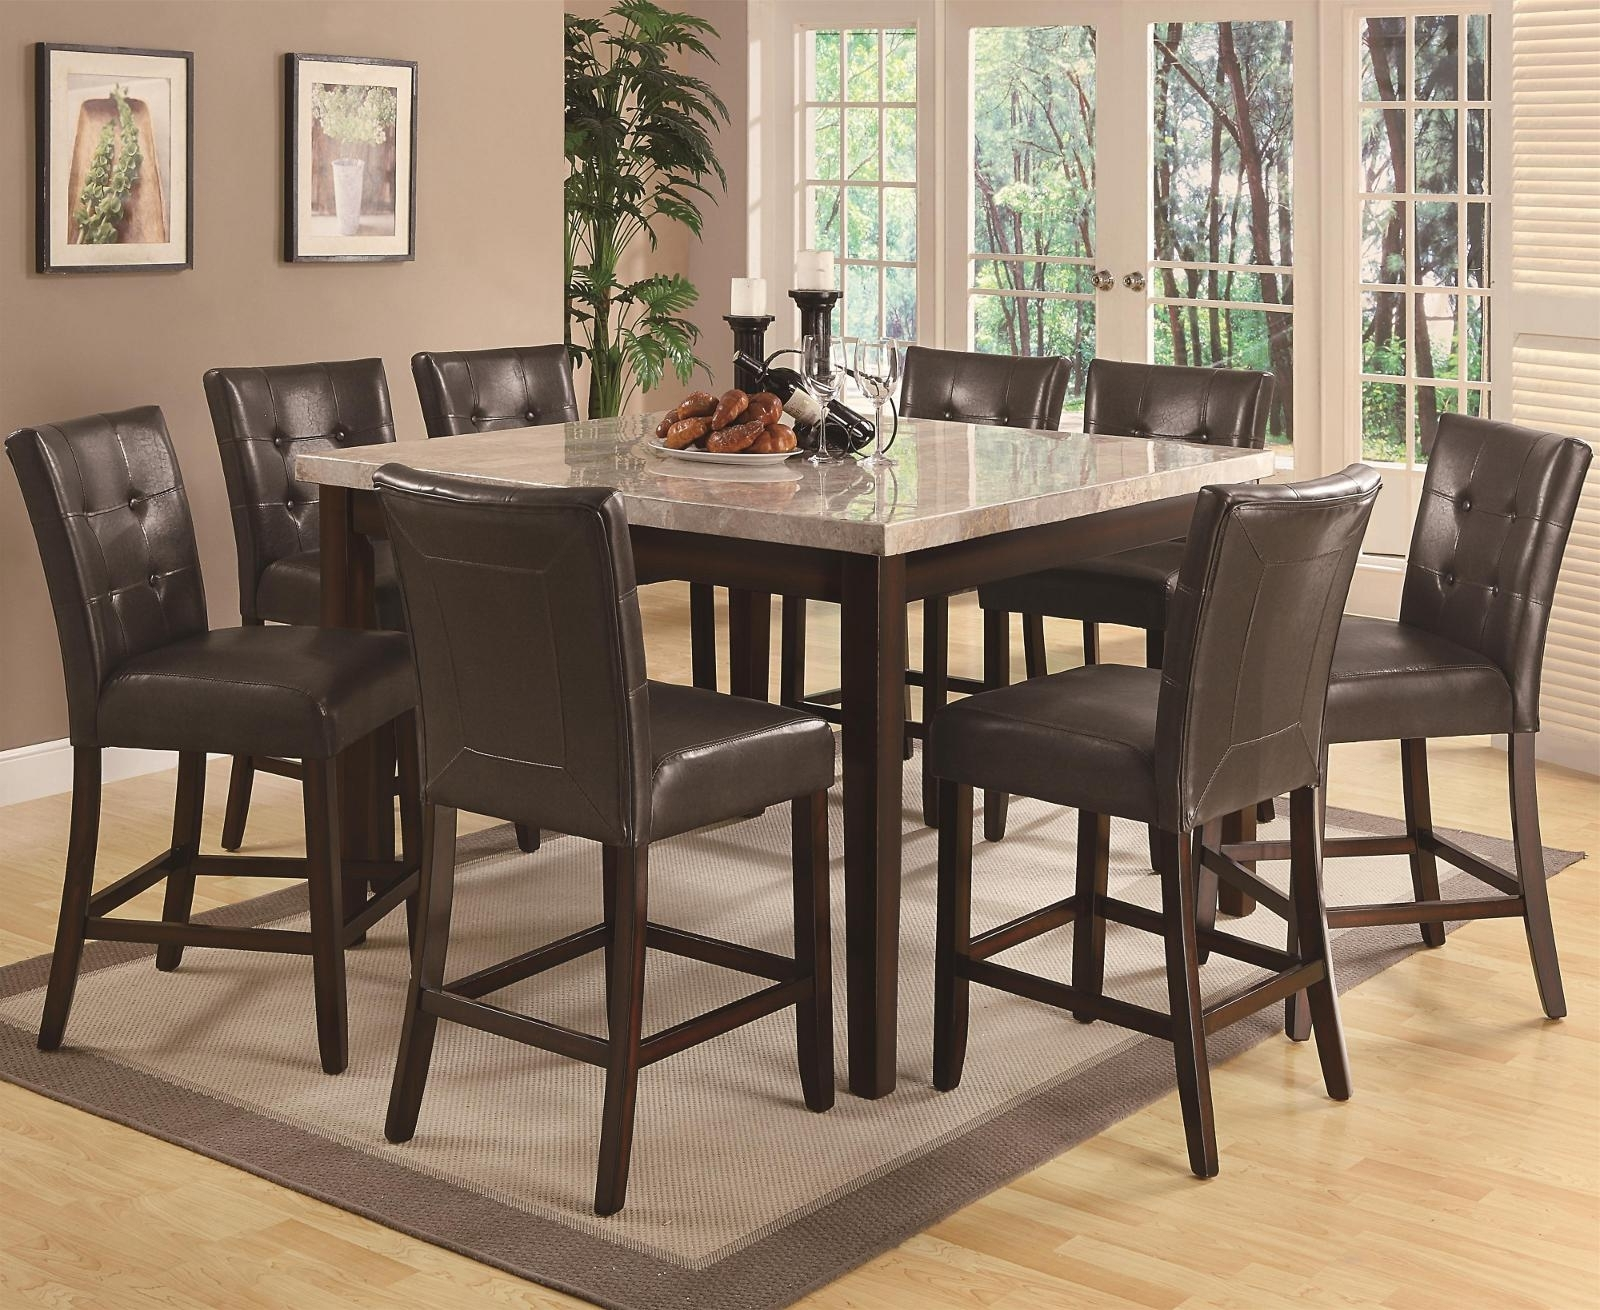 2017 Milton Dining Tables inside Coaster Milton Counter Height Table W/ Tan-Toned Real Marble Top